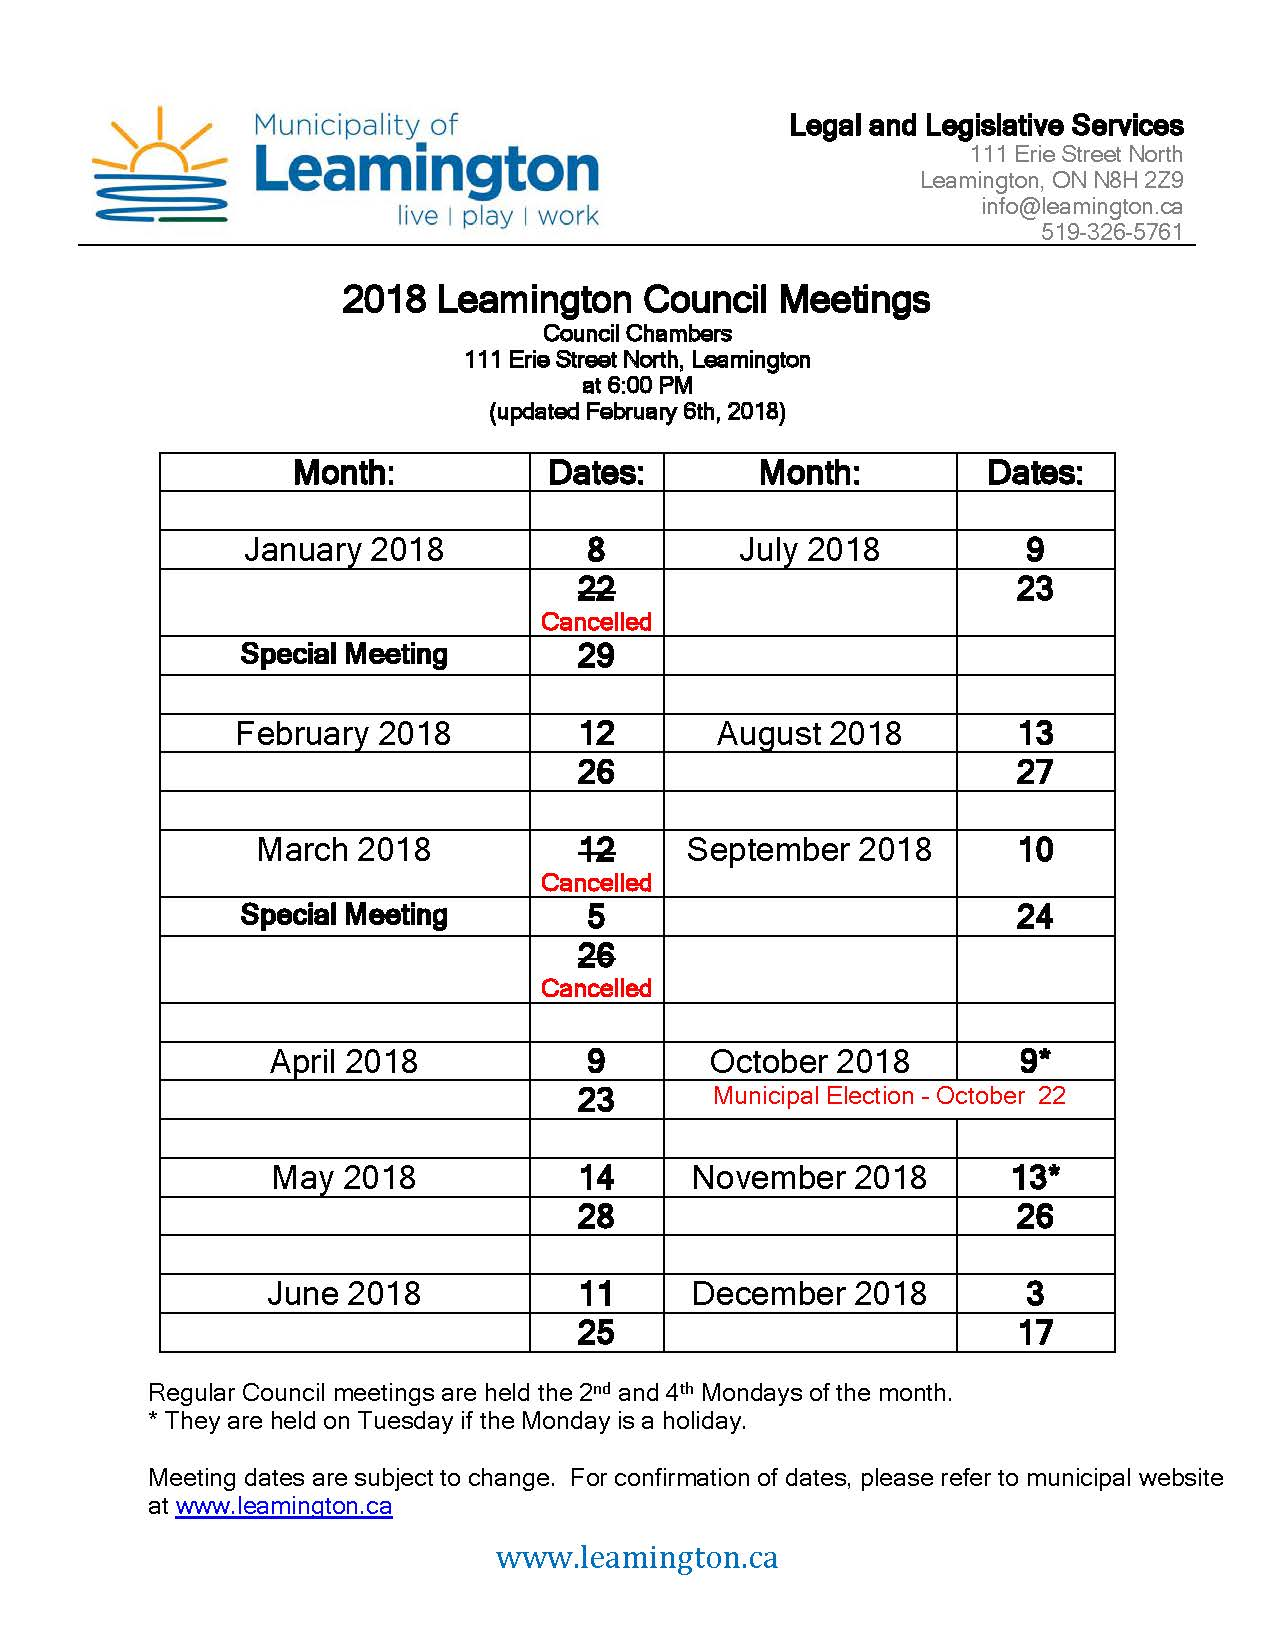 2018 Council Meeting Dates